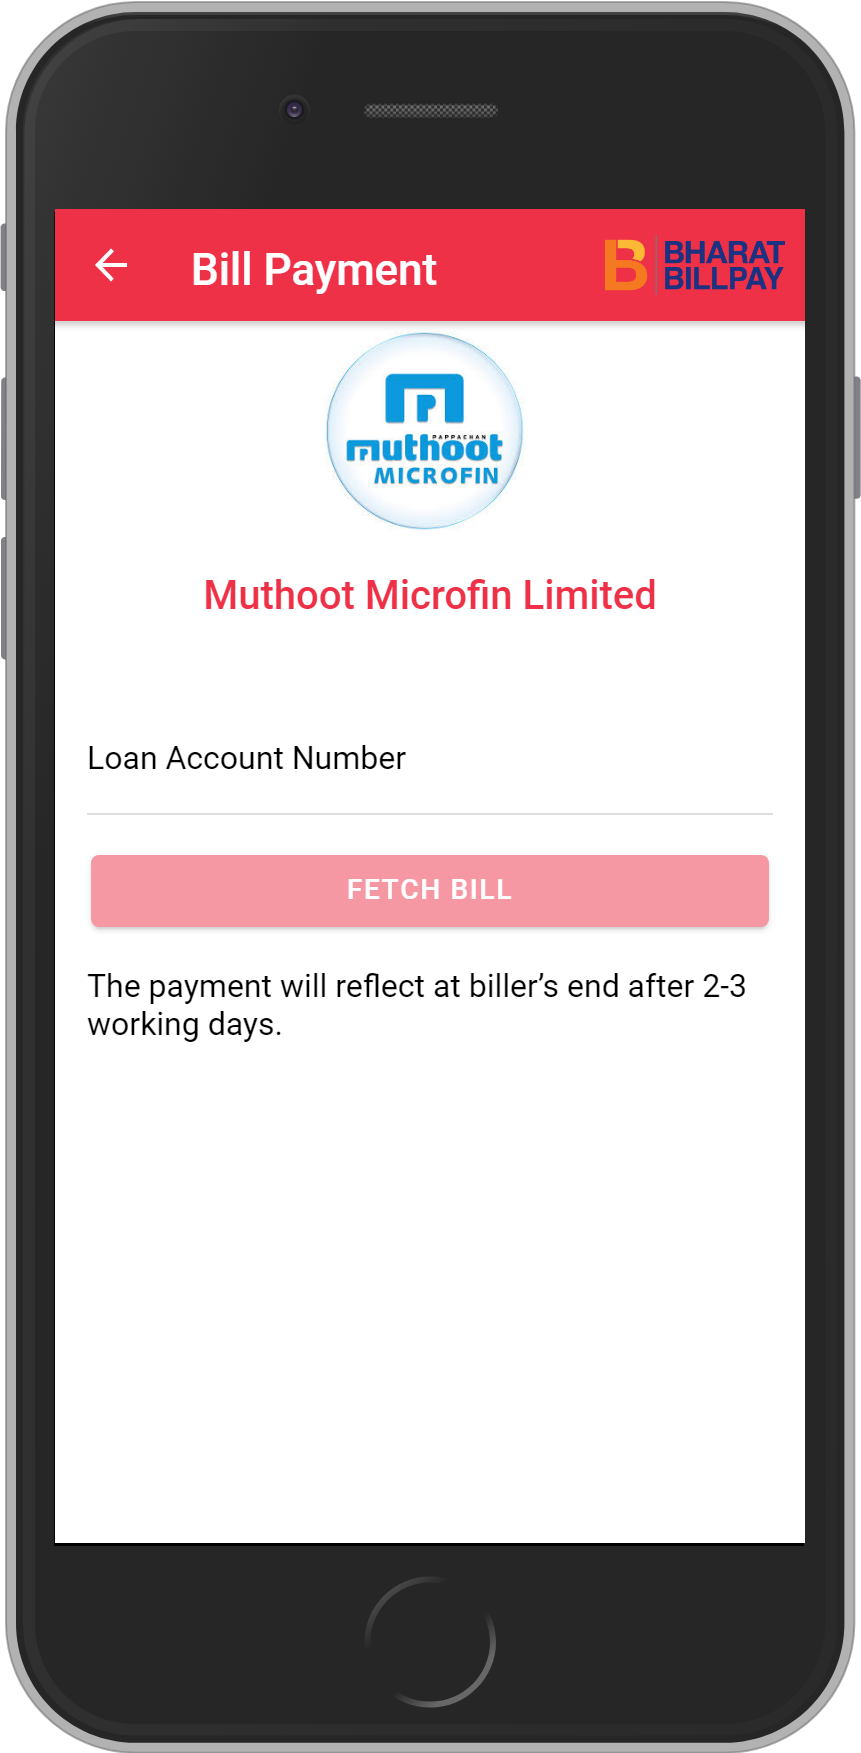 Get UNLIMITED <b>0.1%</b> CASHBACK on Muthoot Microfin Limited Loan Payment.